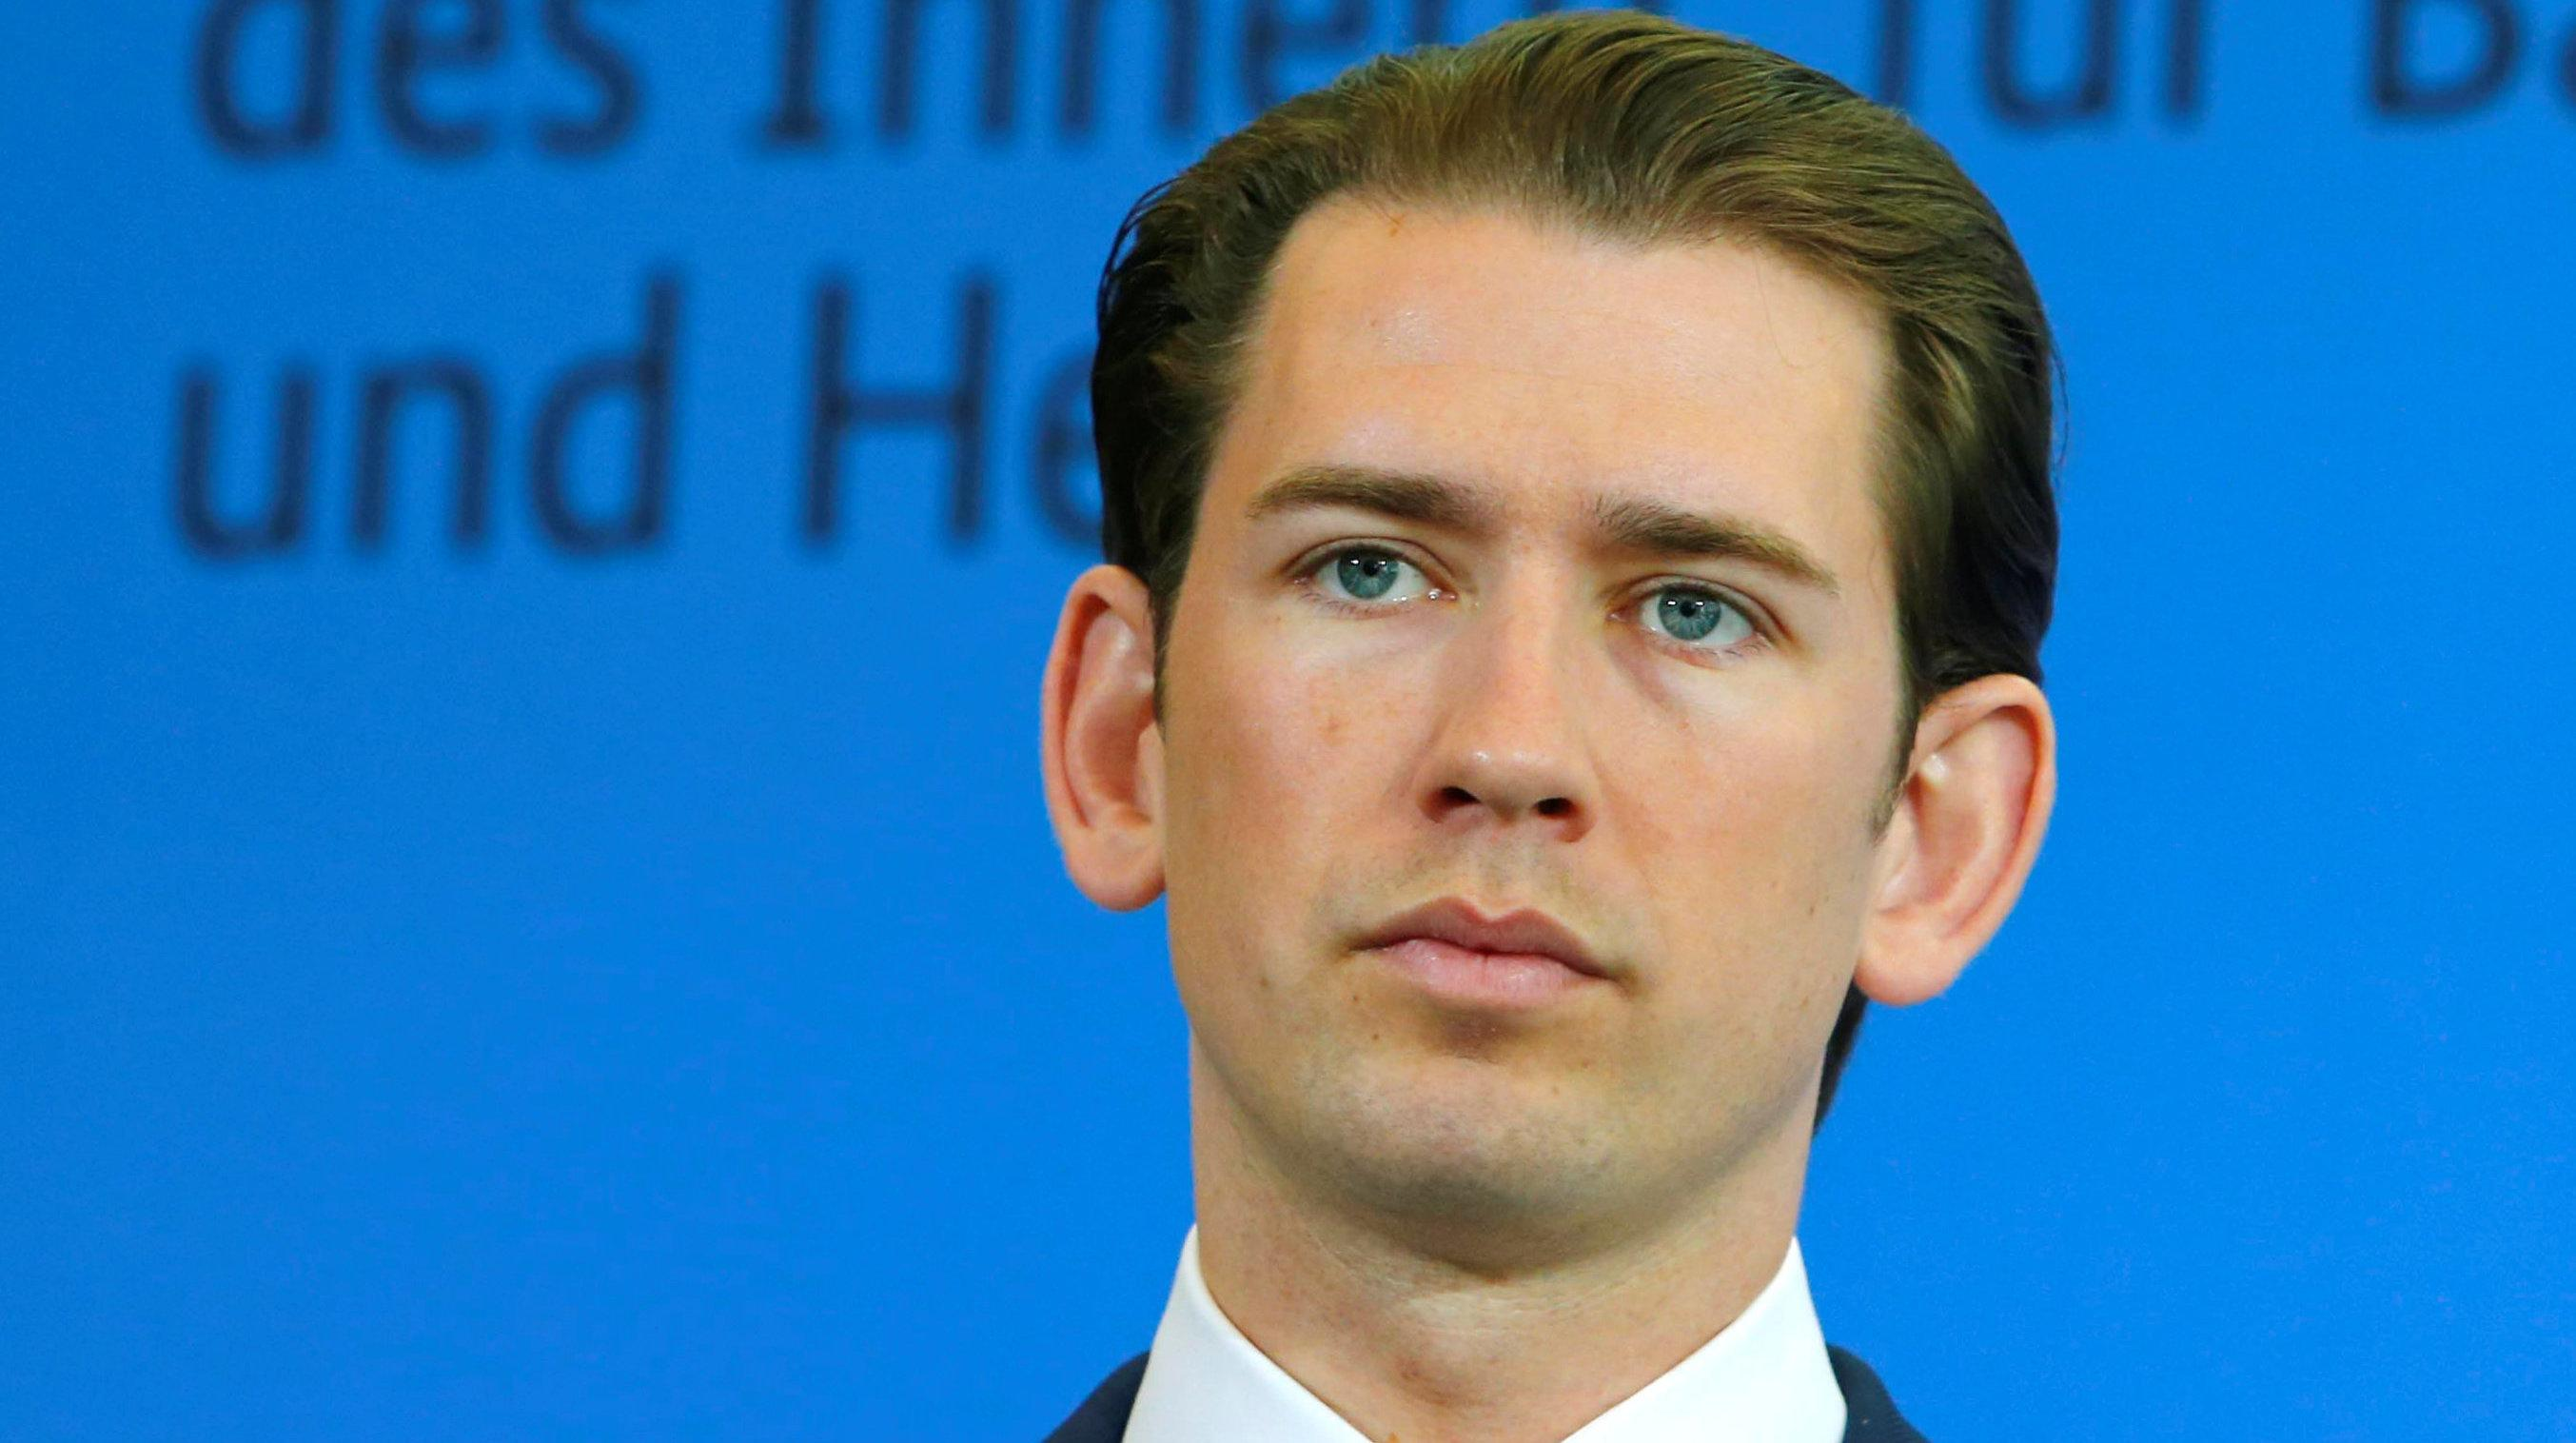 Austria's Leader Wants An 'Axis' With Germany And Italy Against Migration